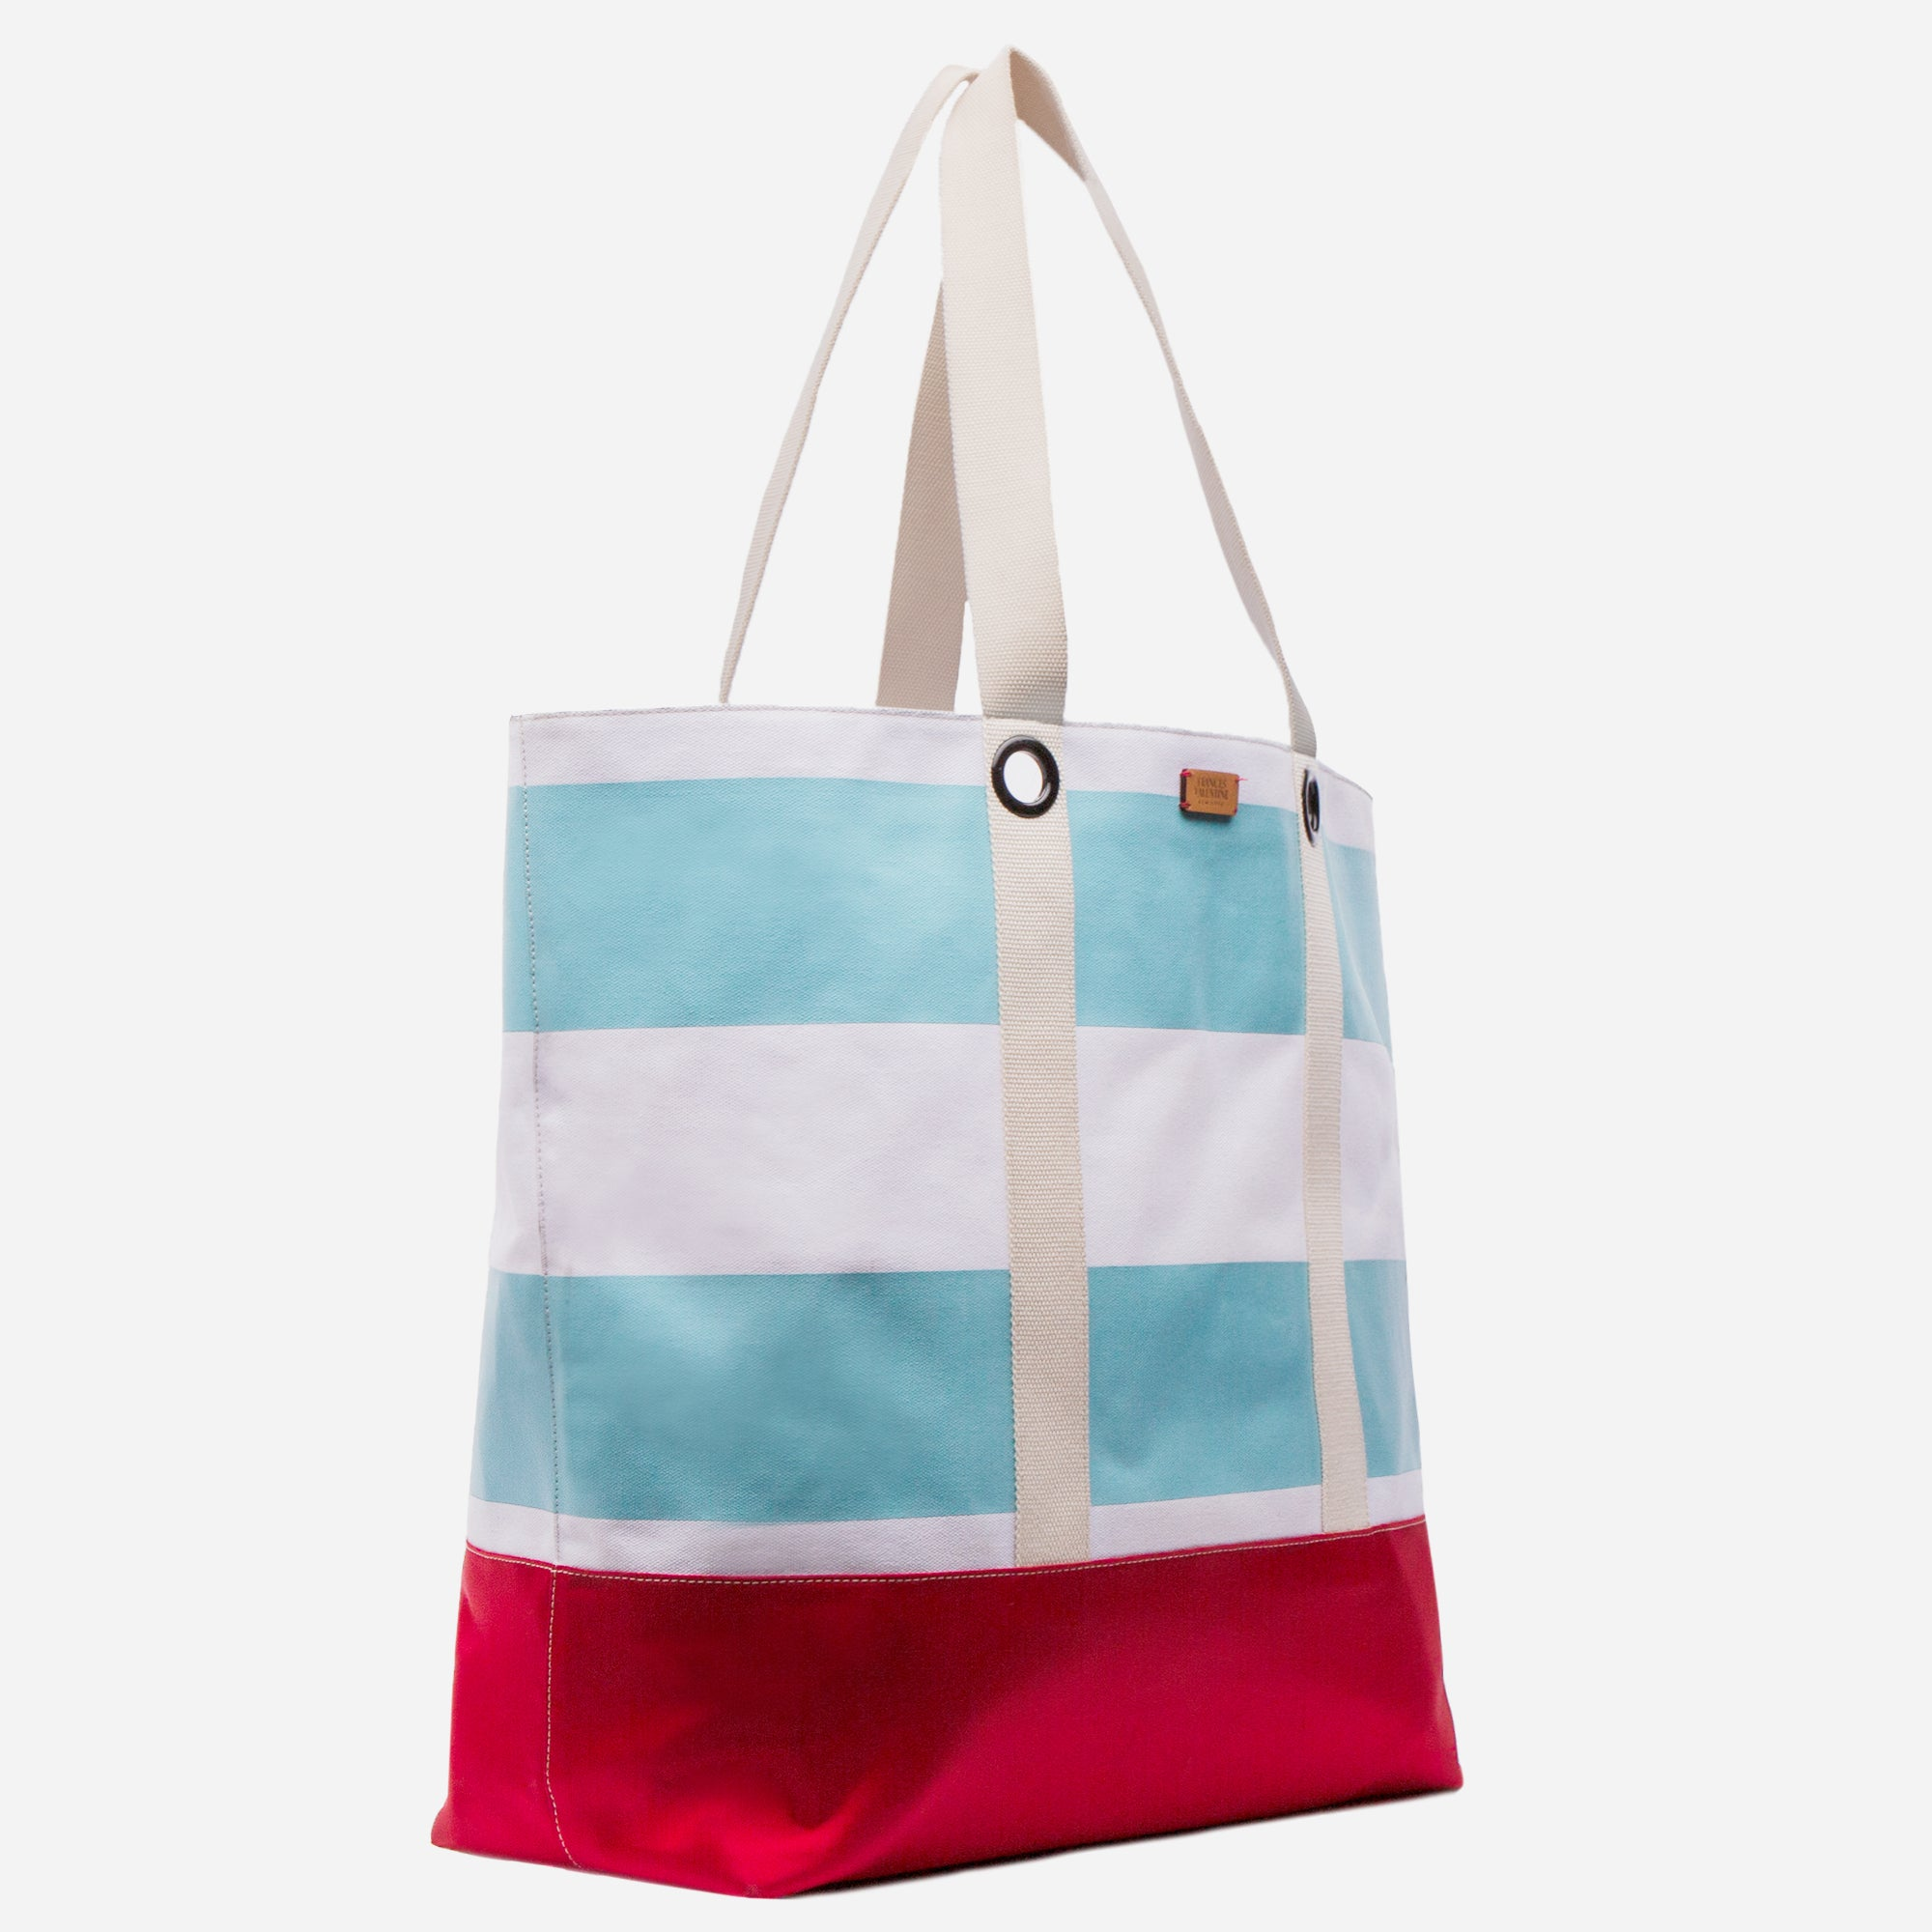 XL Gibson Beach Tote Light Blue Red